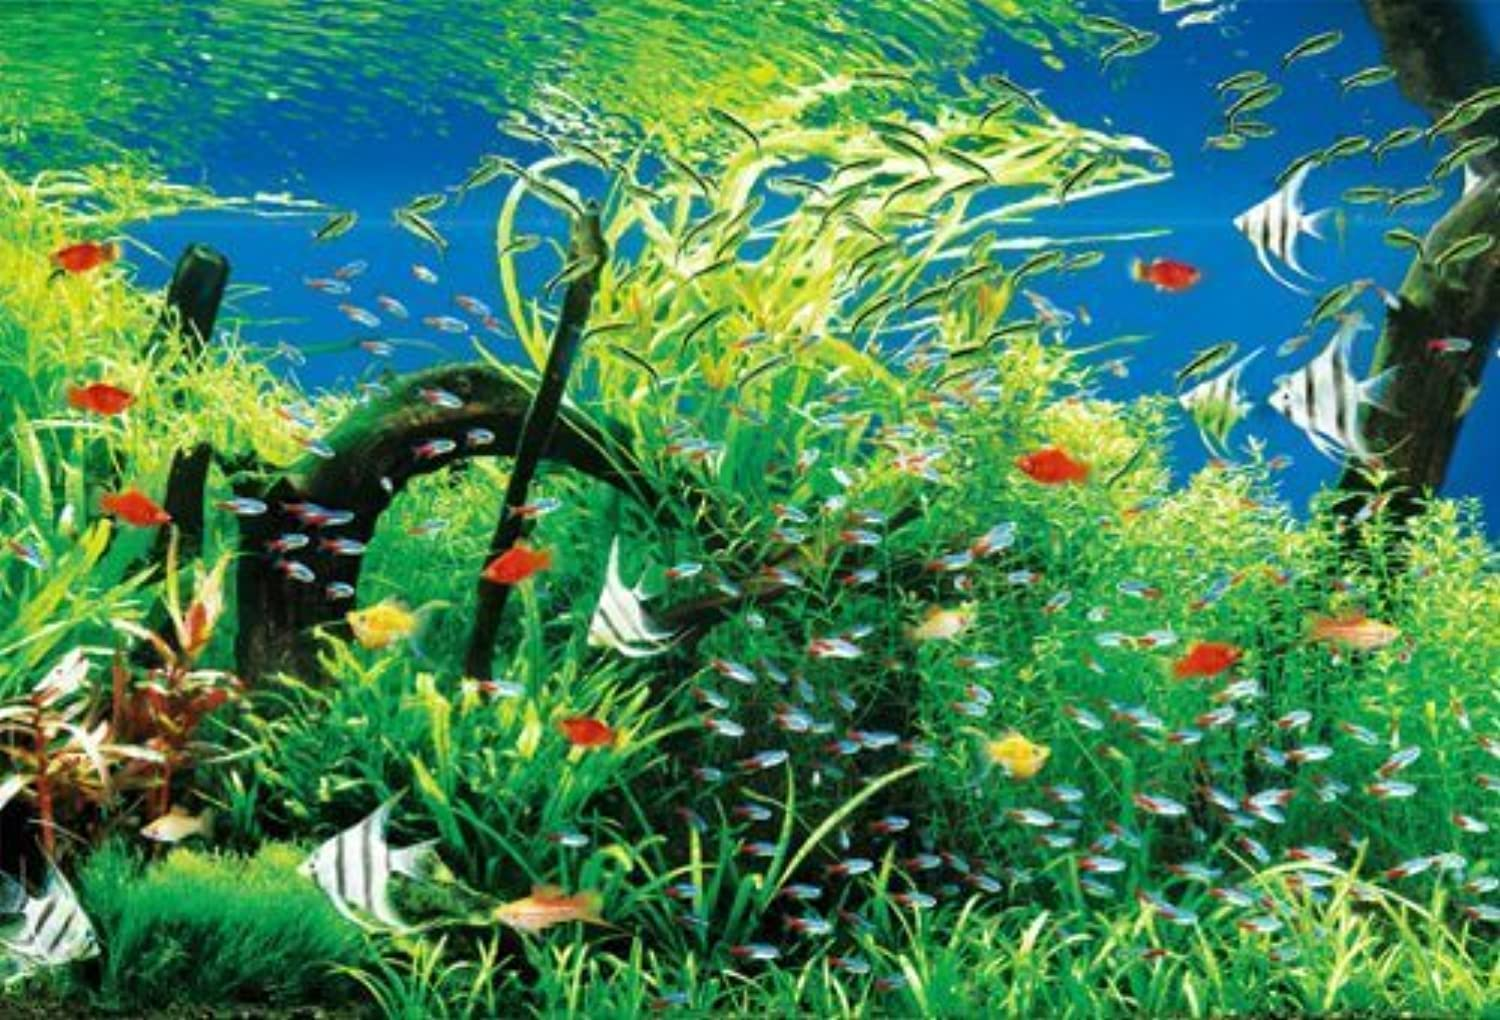 1000 Piece Natural Aquarium 31385 (japan import)